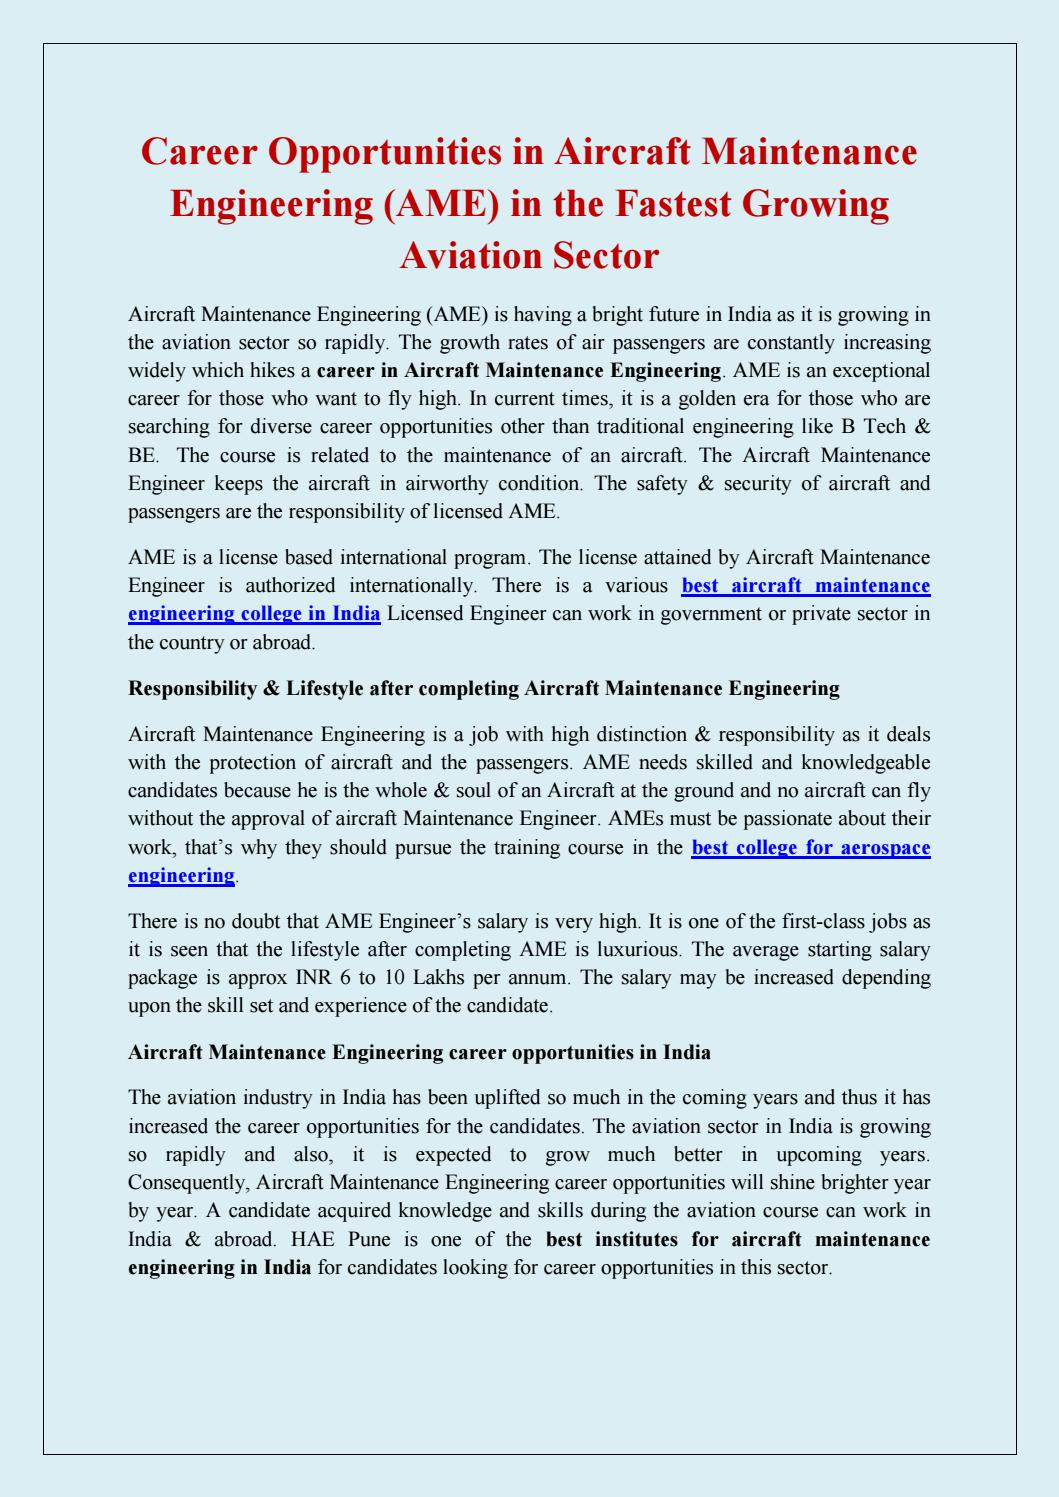 Career Opportunities In Aircraft Maintenance Engineering In The Fastest Growing Aviation Sector By Haepune Issuu